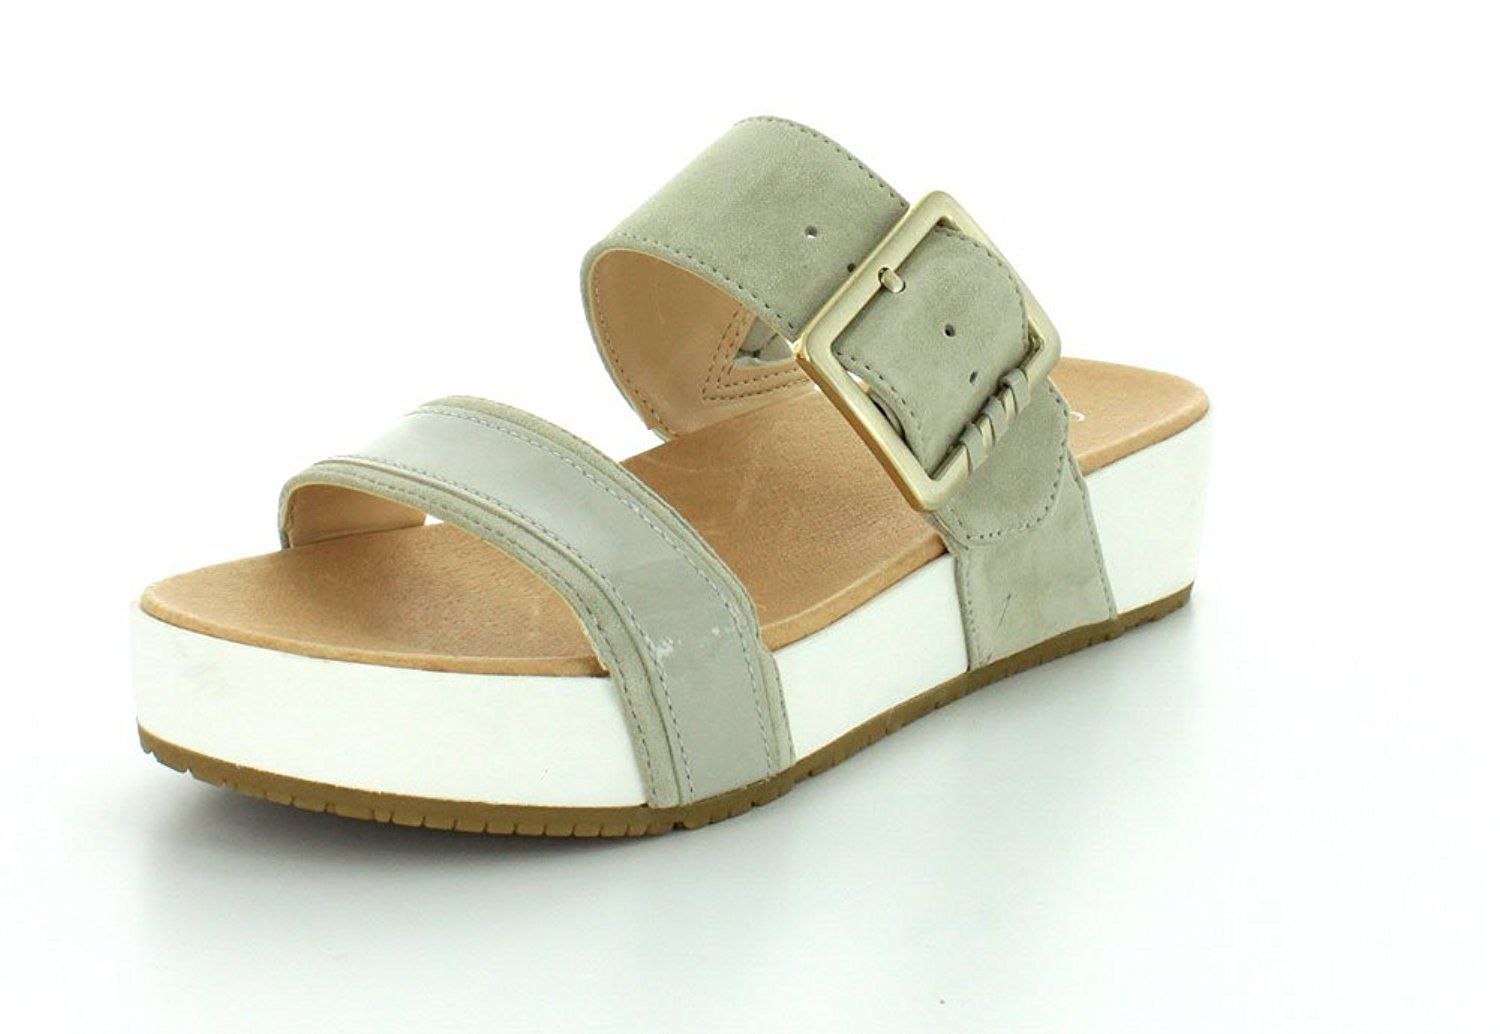 b0e8feb148f1 Dr. Scholl s Original Collection Women s Frill Slide Sandal    Review more  details here   Wedges Shoes